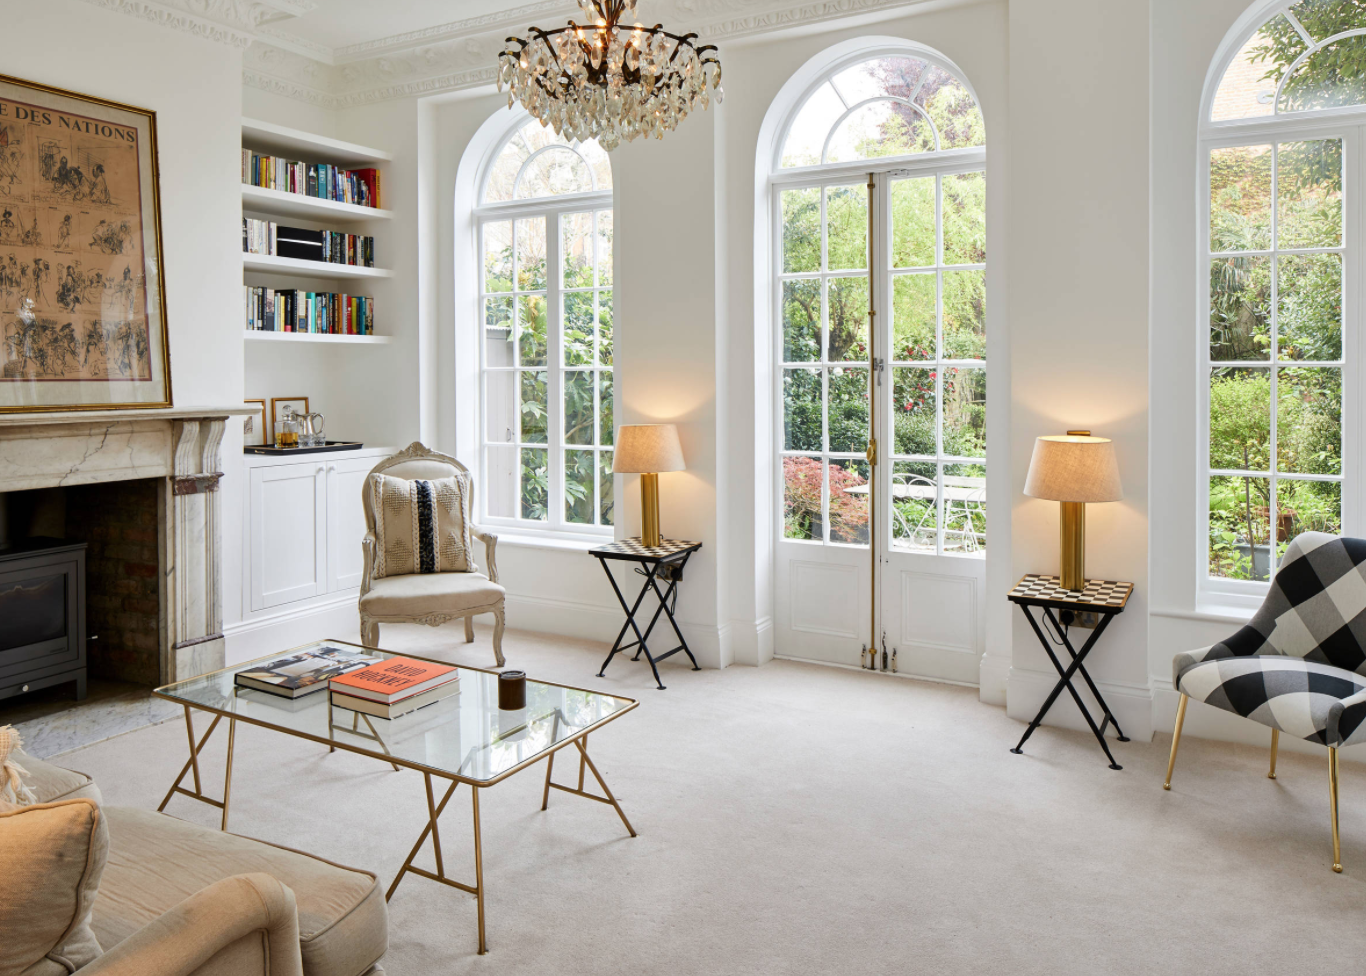 Living room in a period property showcasing large curved french windows in a West London family home.